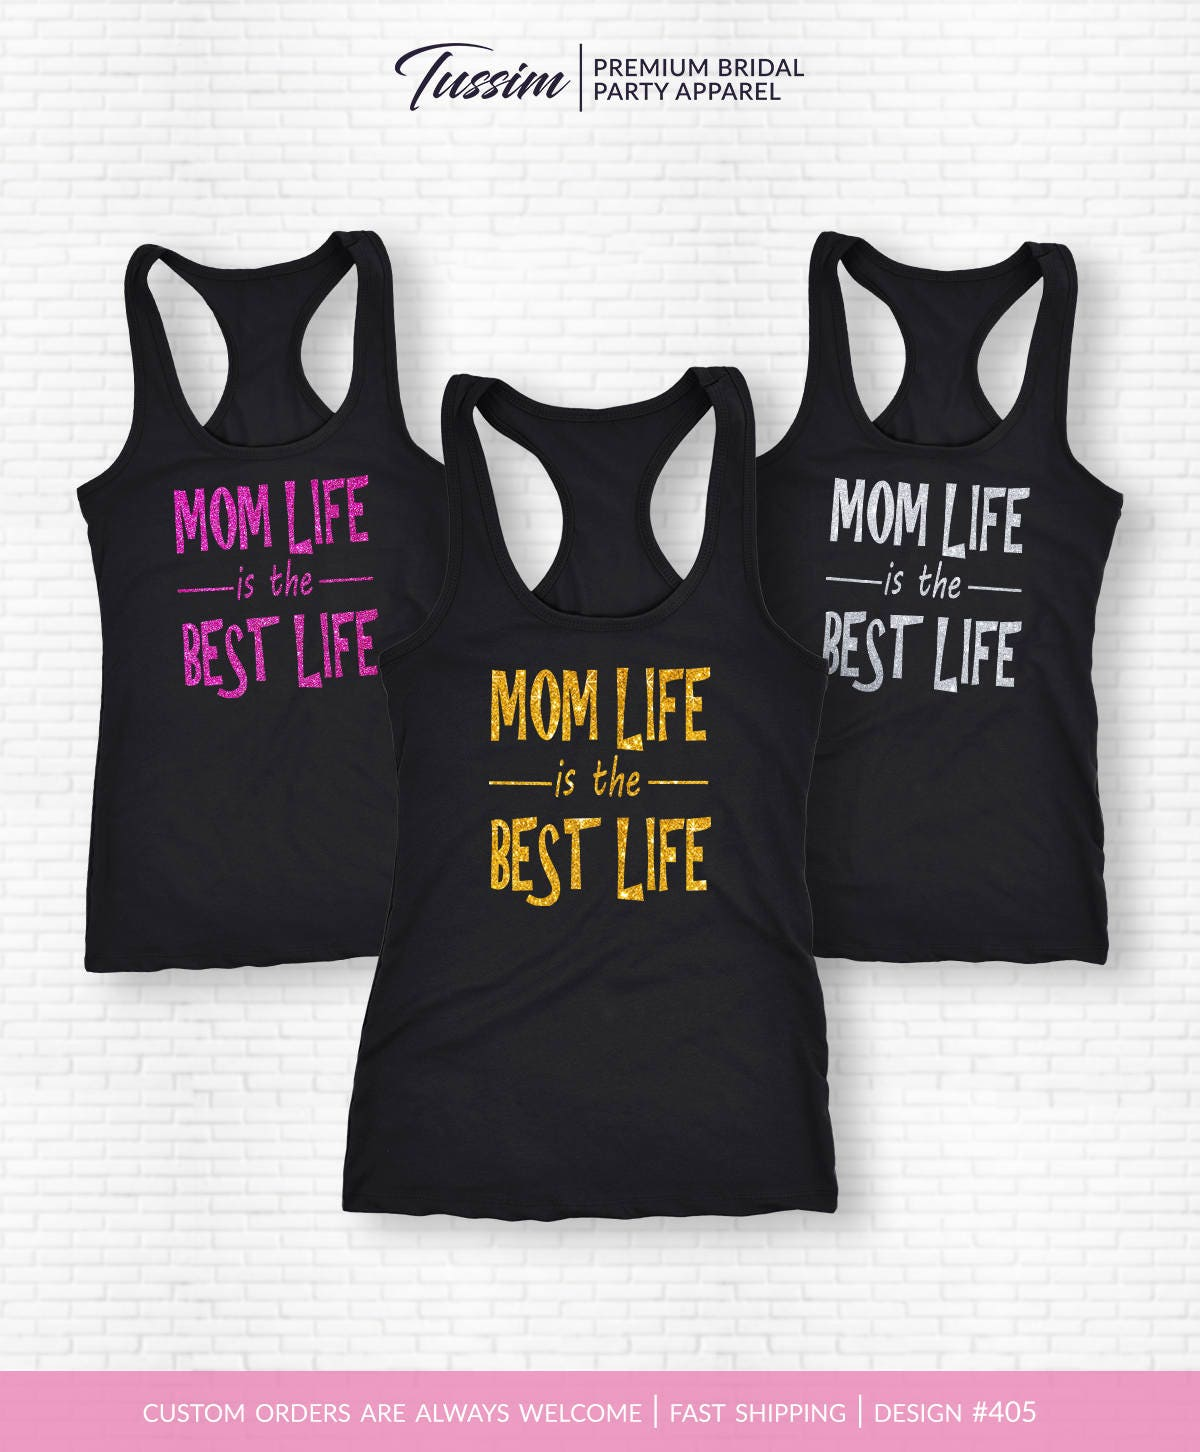 Mom Life Is The Best Life Shirt Mom Life Is The Best Life Tank Top Womens TShirt Gift for Mom Mom BirthdayMom Life Tank Top